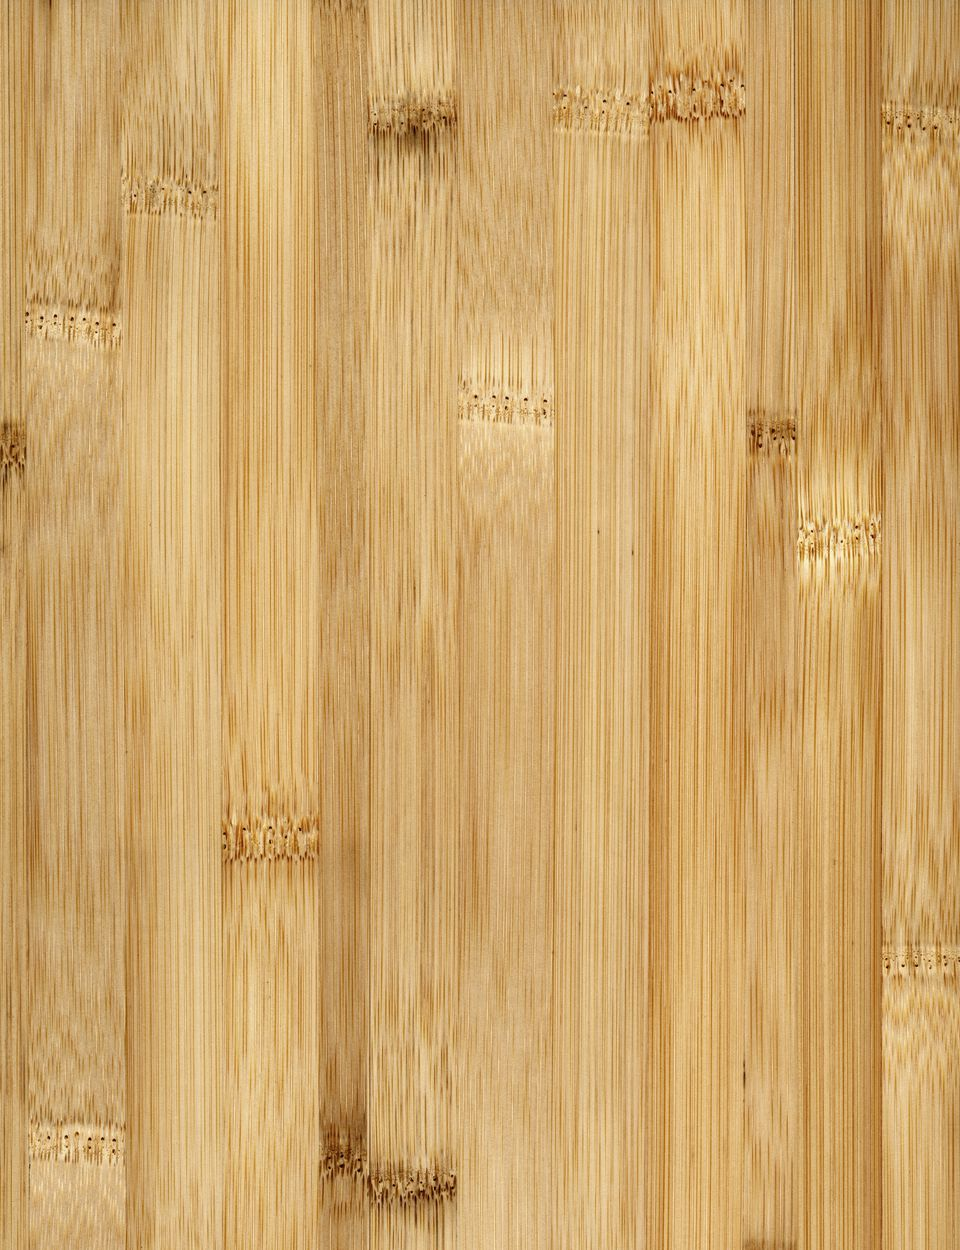 Bamboo flooring buying guide for Bamboo hardwood flooring